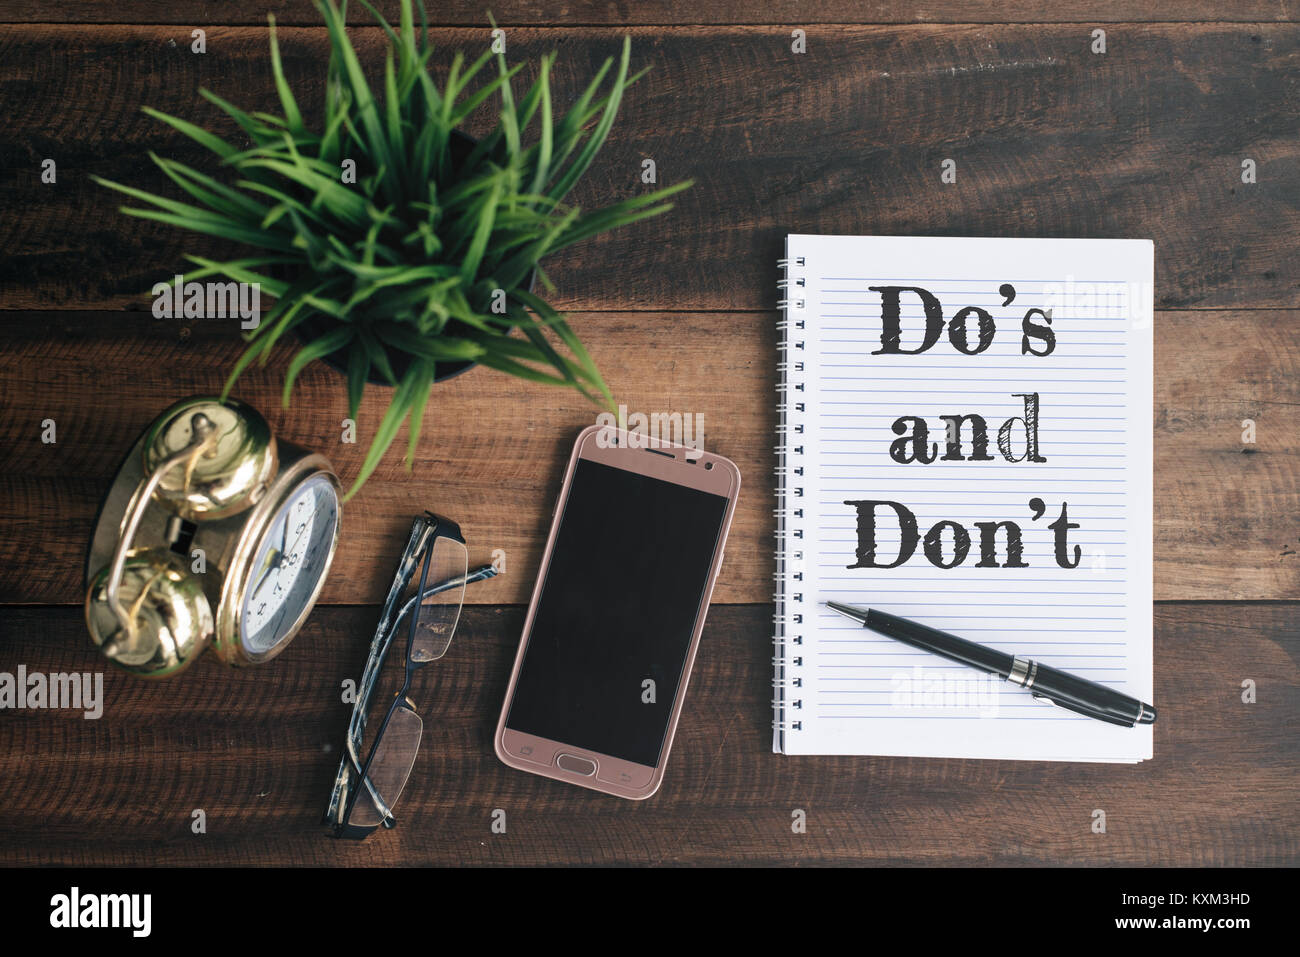 phone, glasses, clock, green plant and notebook with Do's and don't word. lifestyle concept - Stock Image